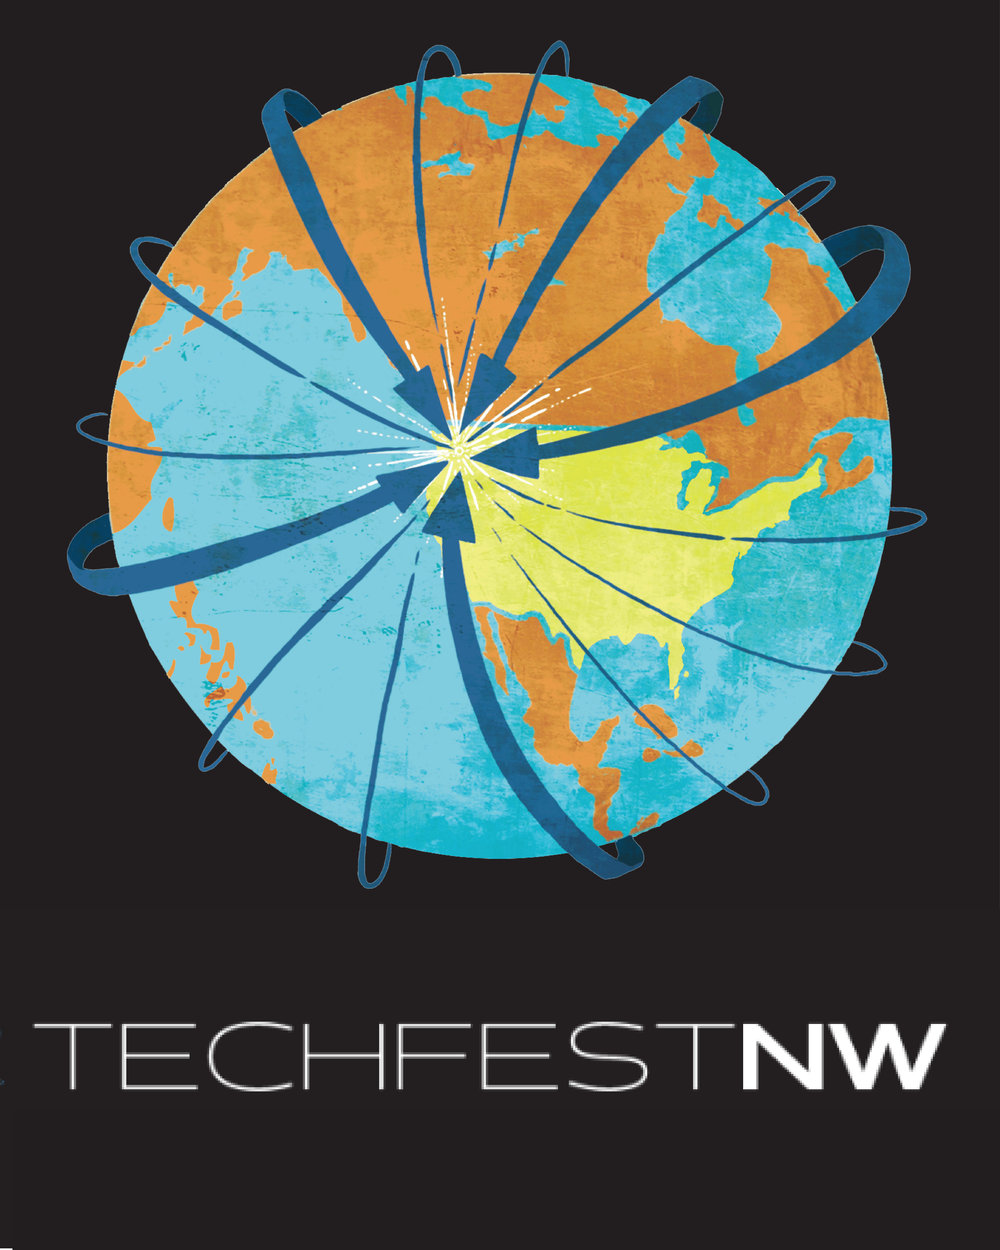 TECHFEST NW, EVENT - Gathering of innovators, startups, entrepreneurs, tech companies and investors from around the globe.